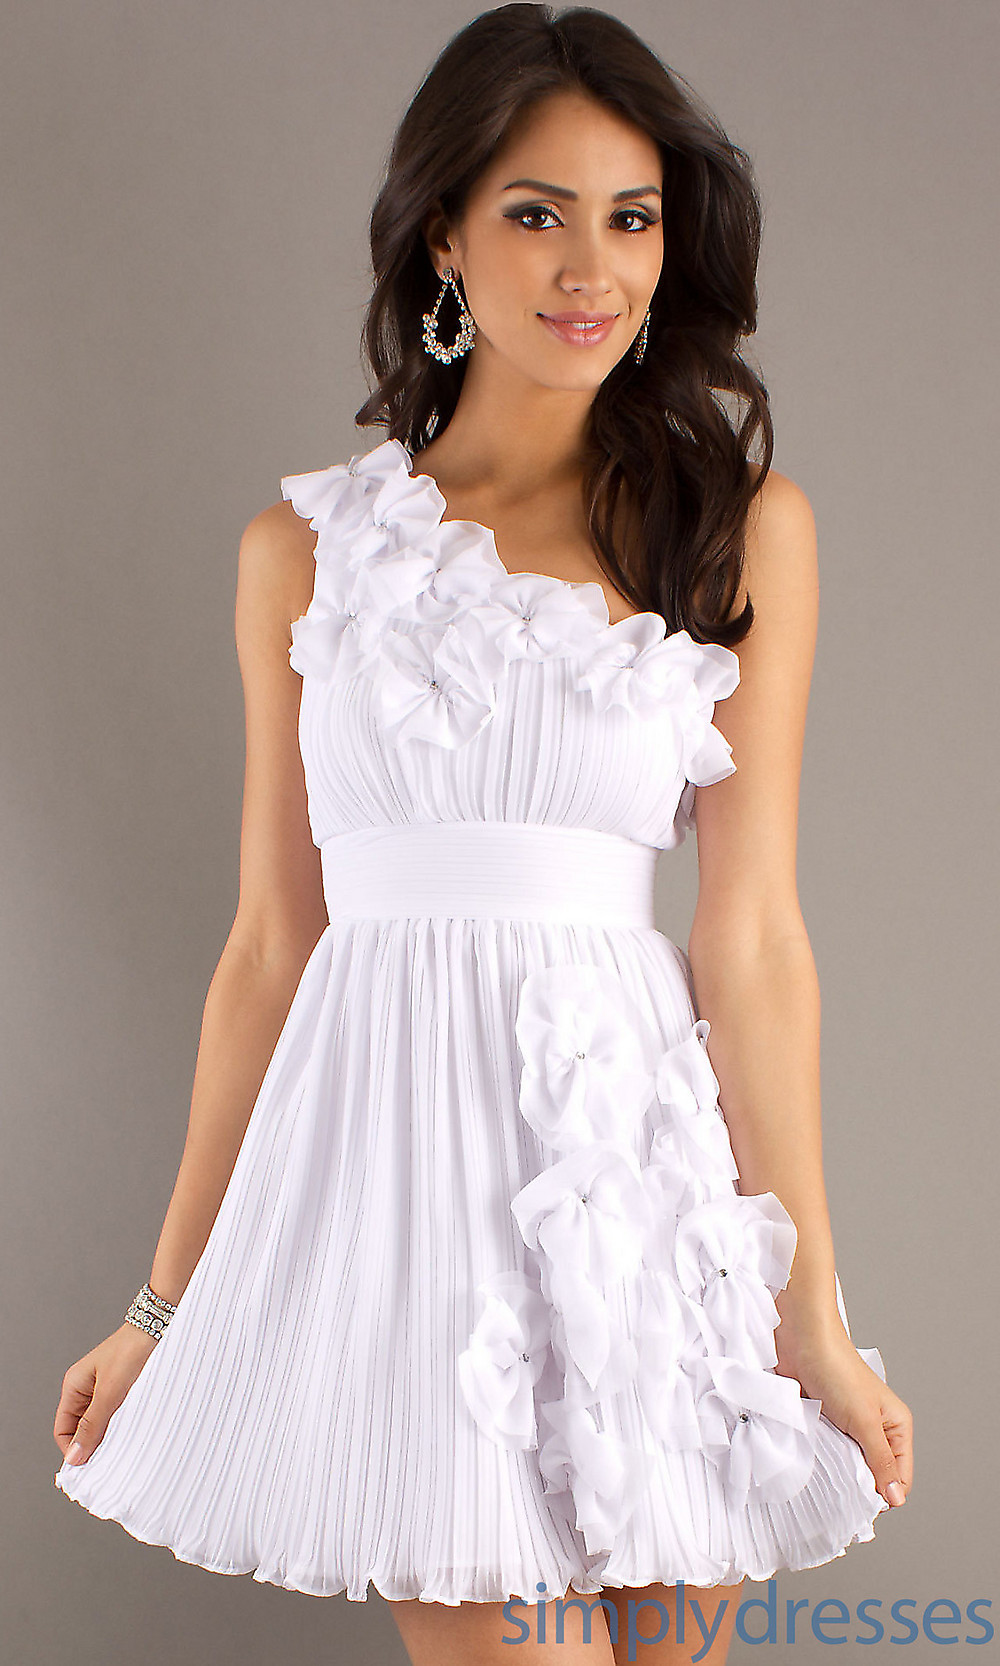 Short white dresses with long sleeves style jeans for Cute short white wedding dresses